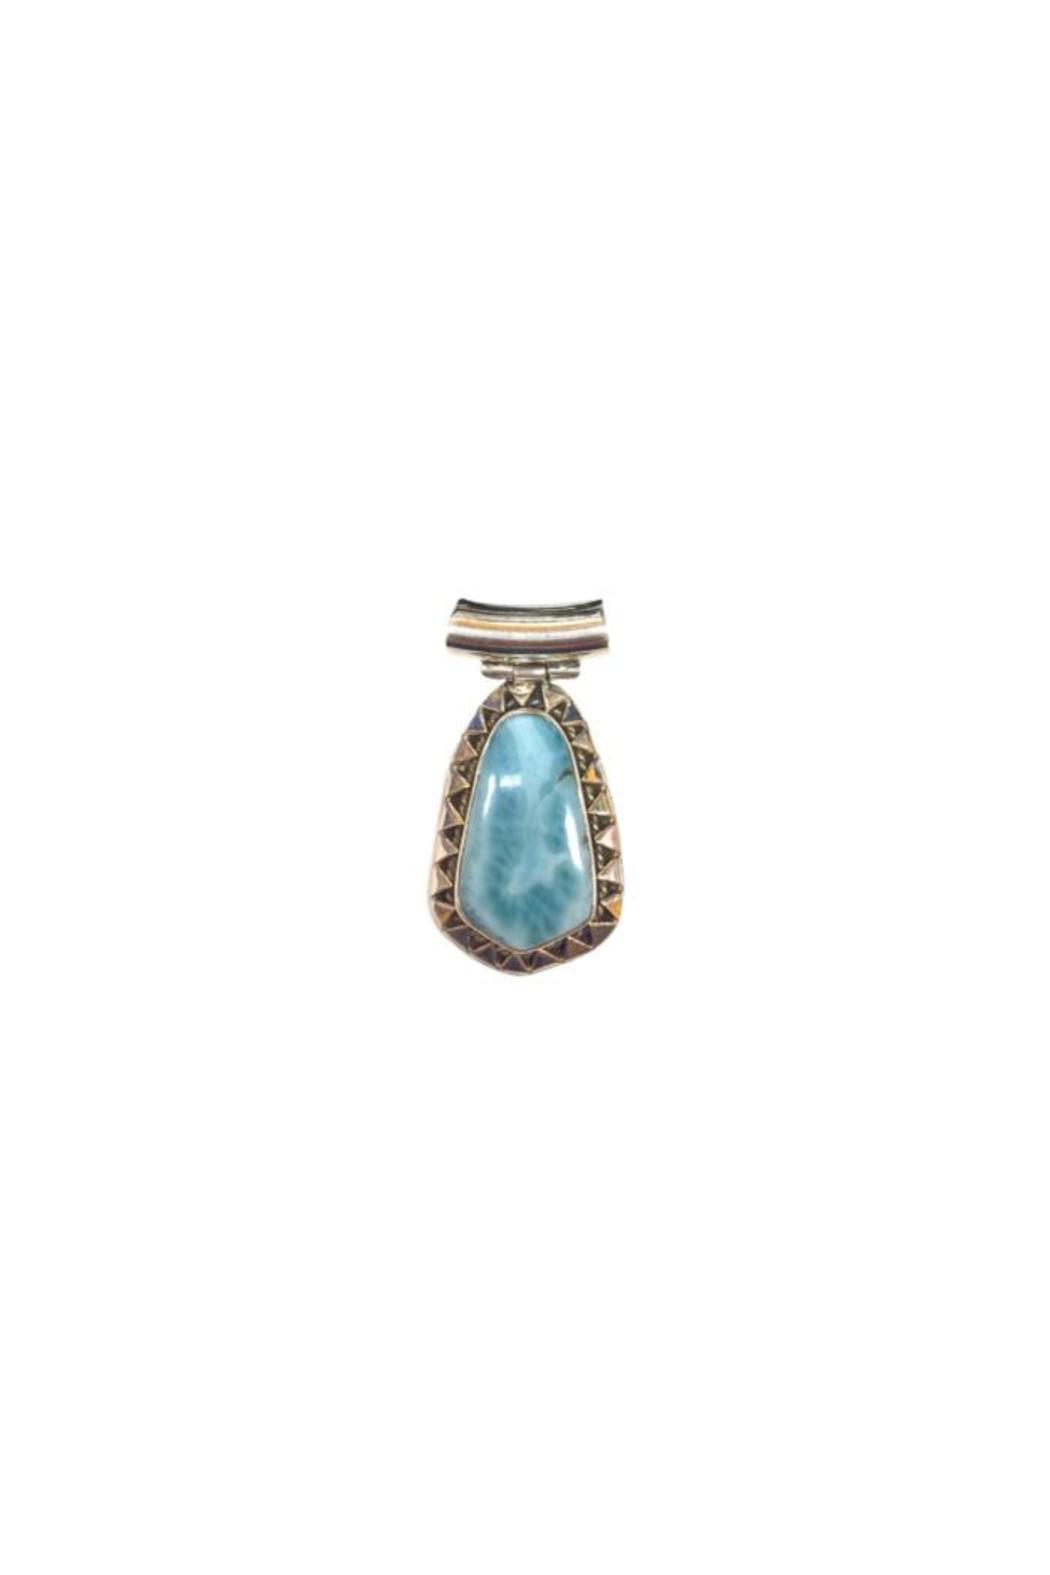 A little bit hippy sterling larimar pendant from roanoke shoptiques a little bit hippy sterling larimar pendant front full image aloadofball Image collections